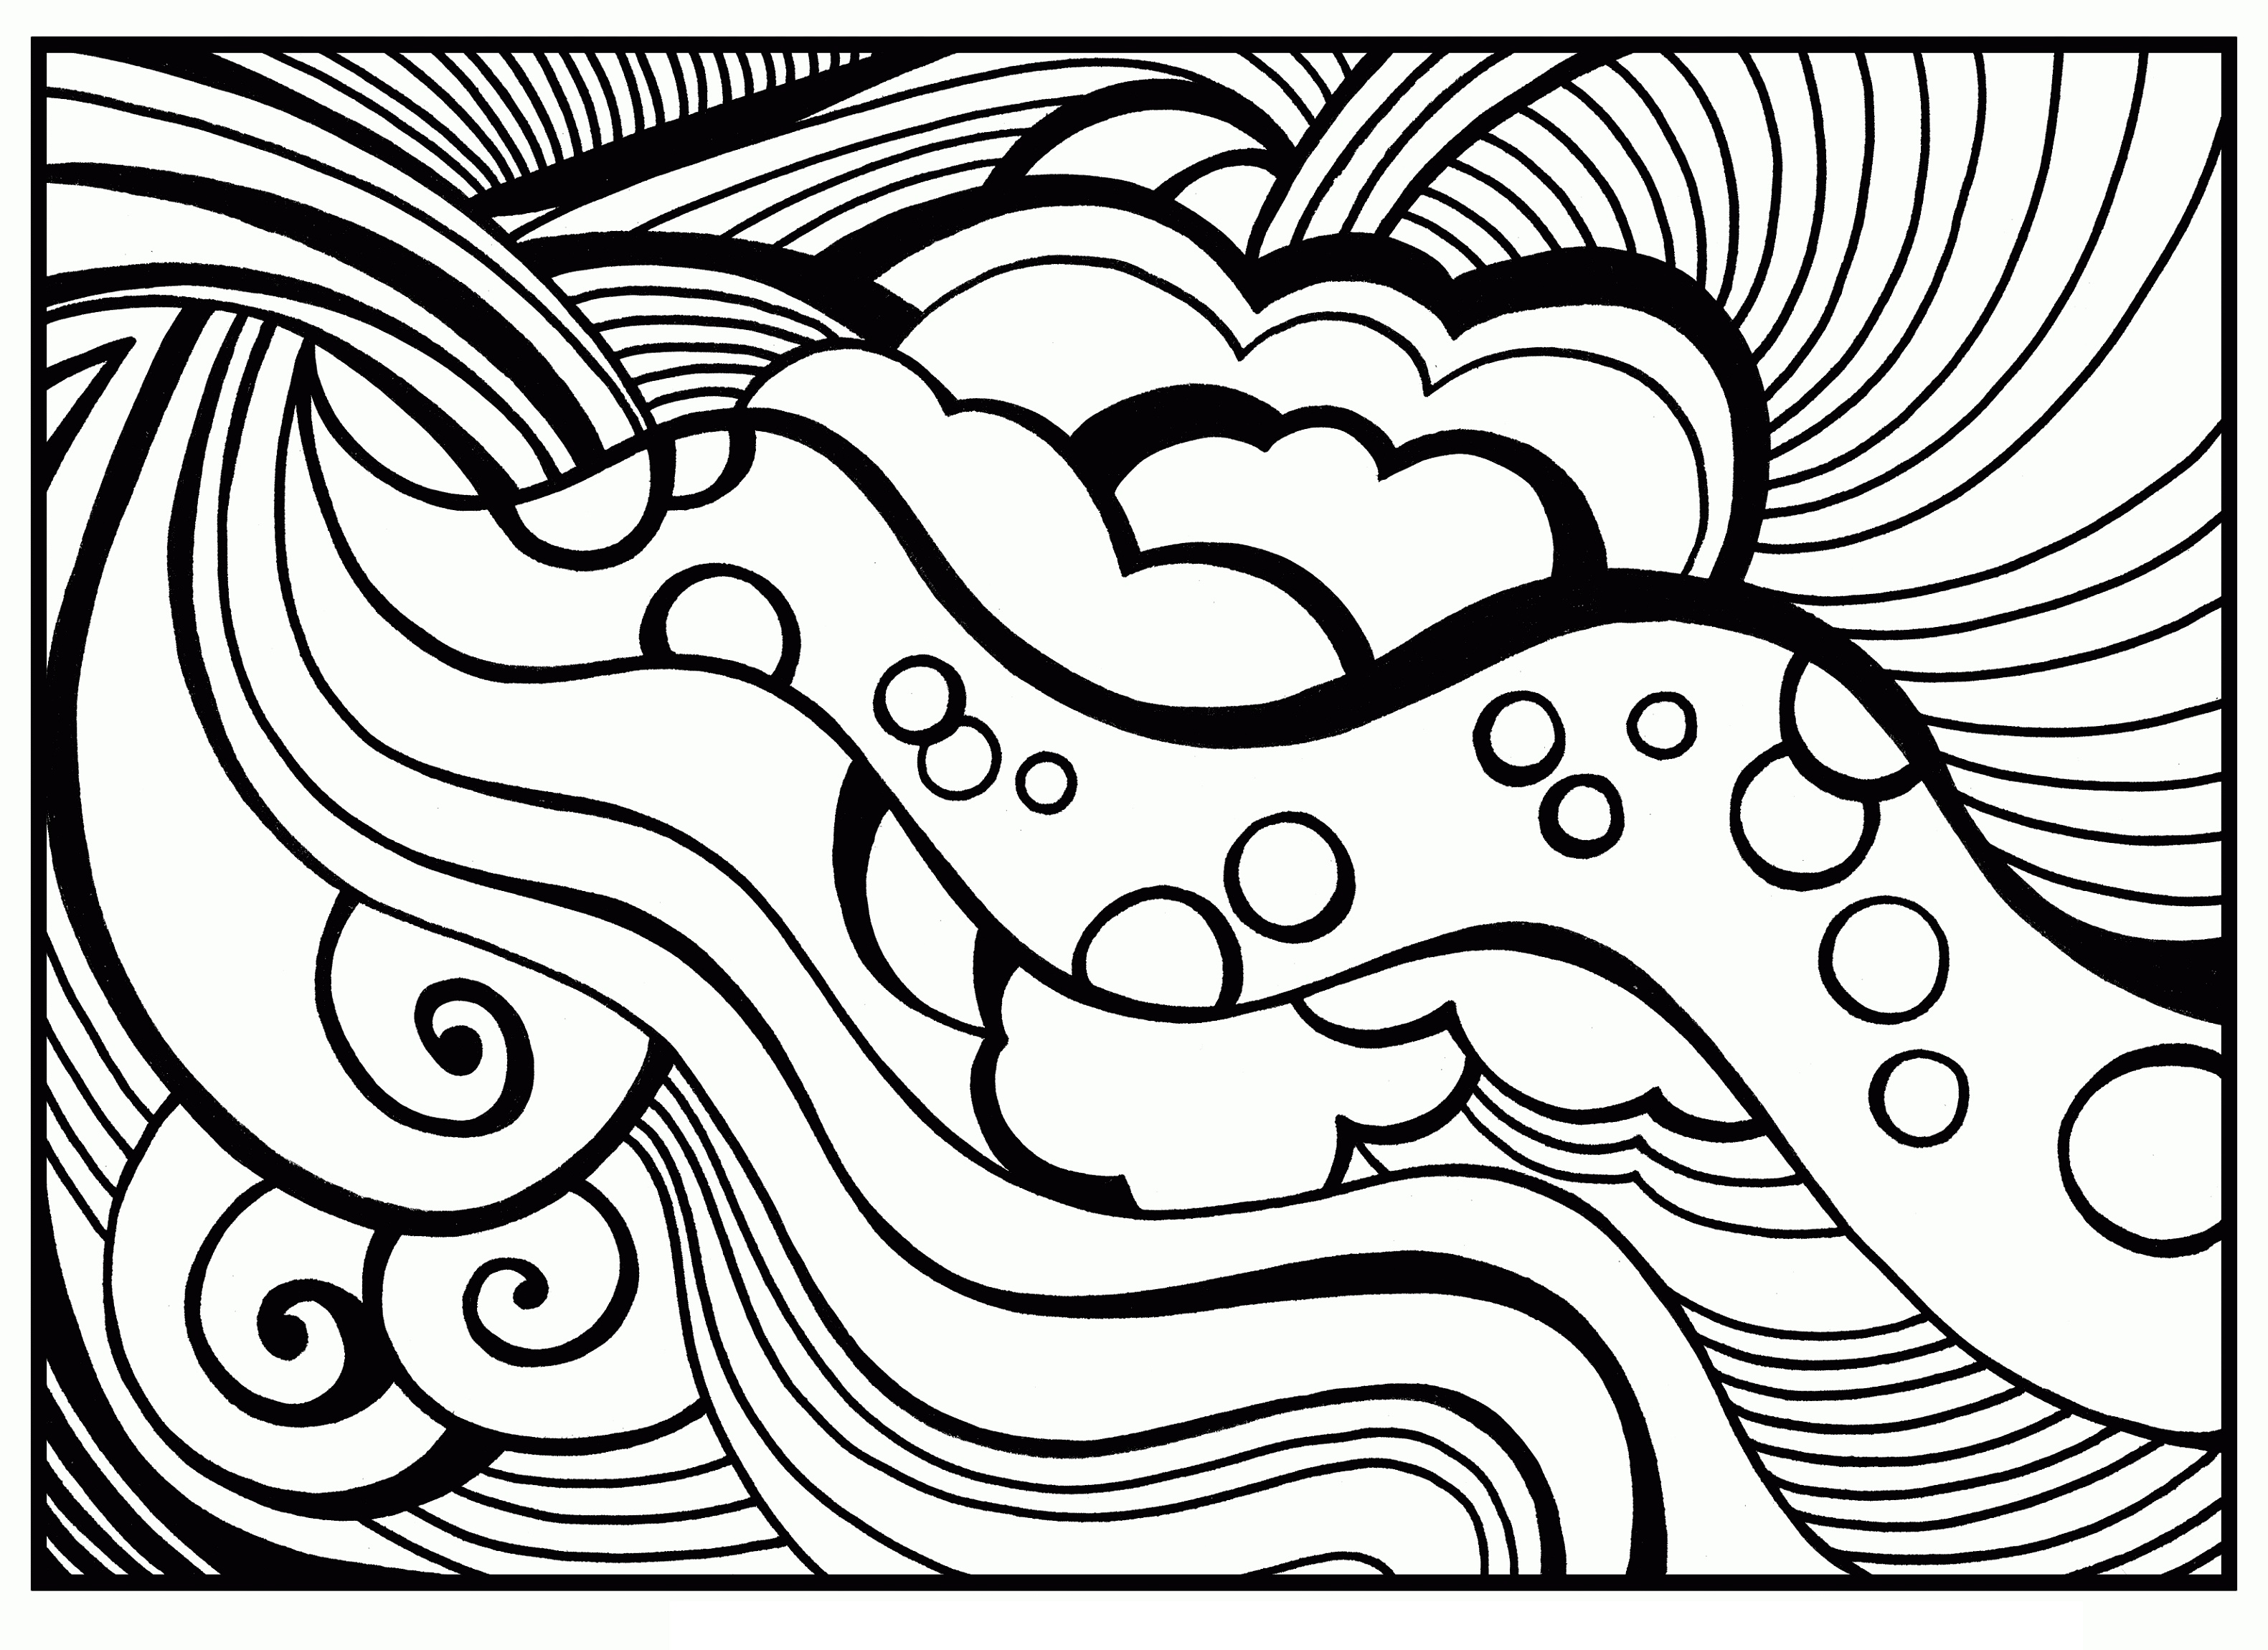 Coloring Pages for Teens Abstract